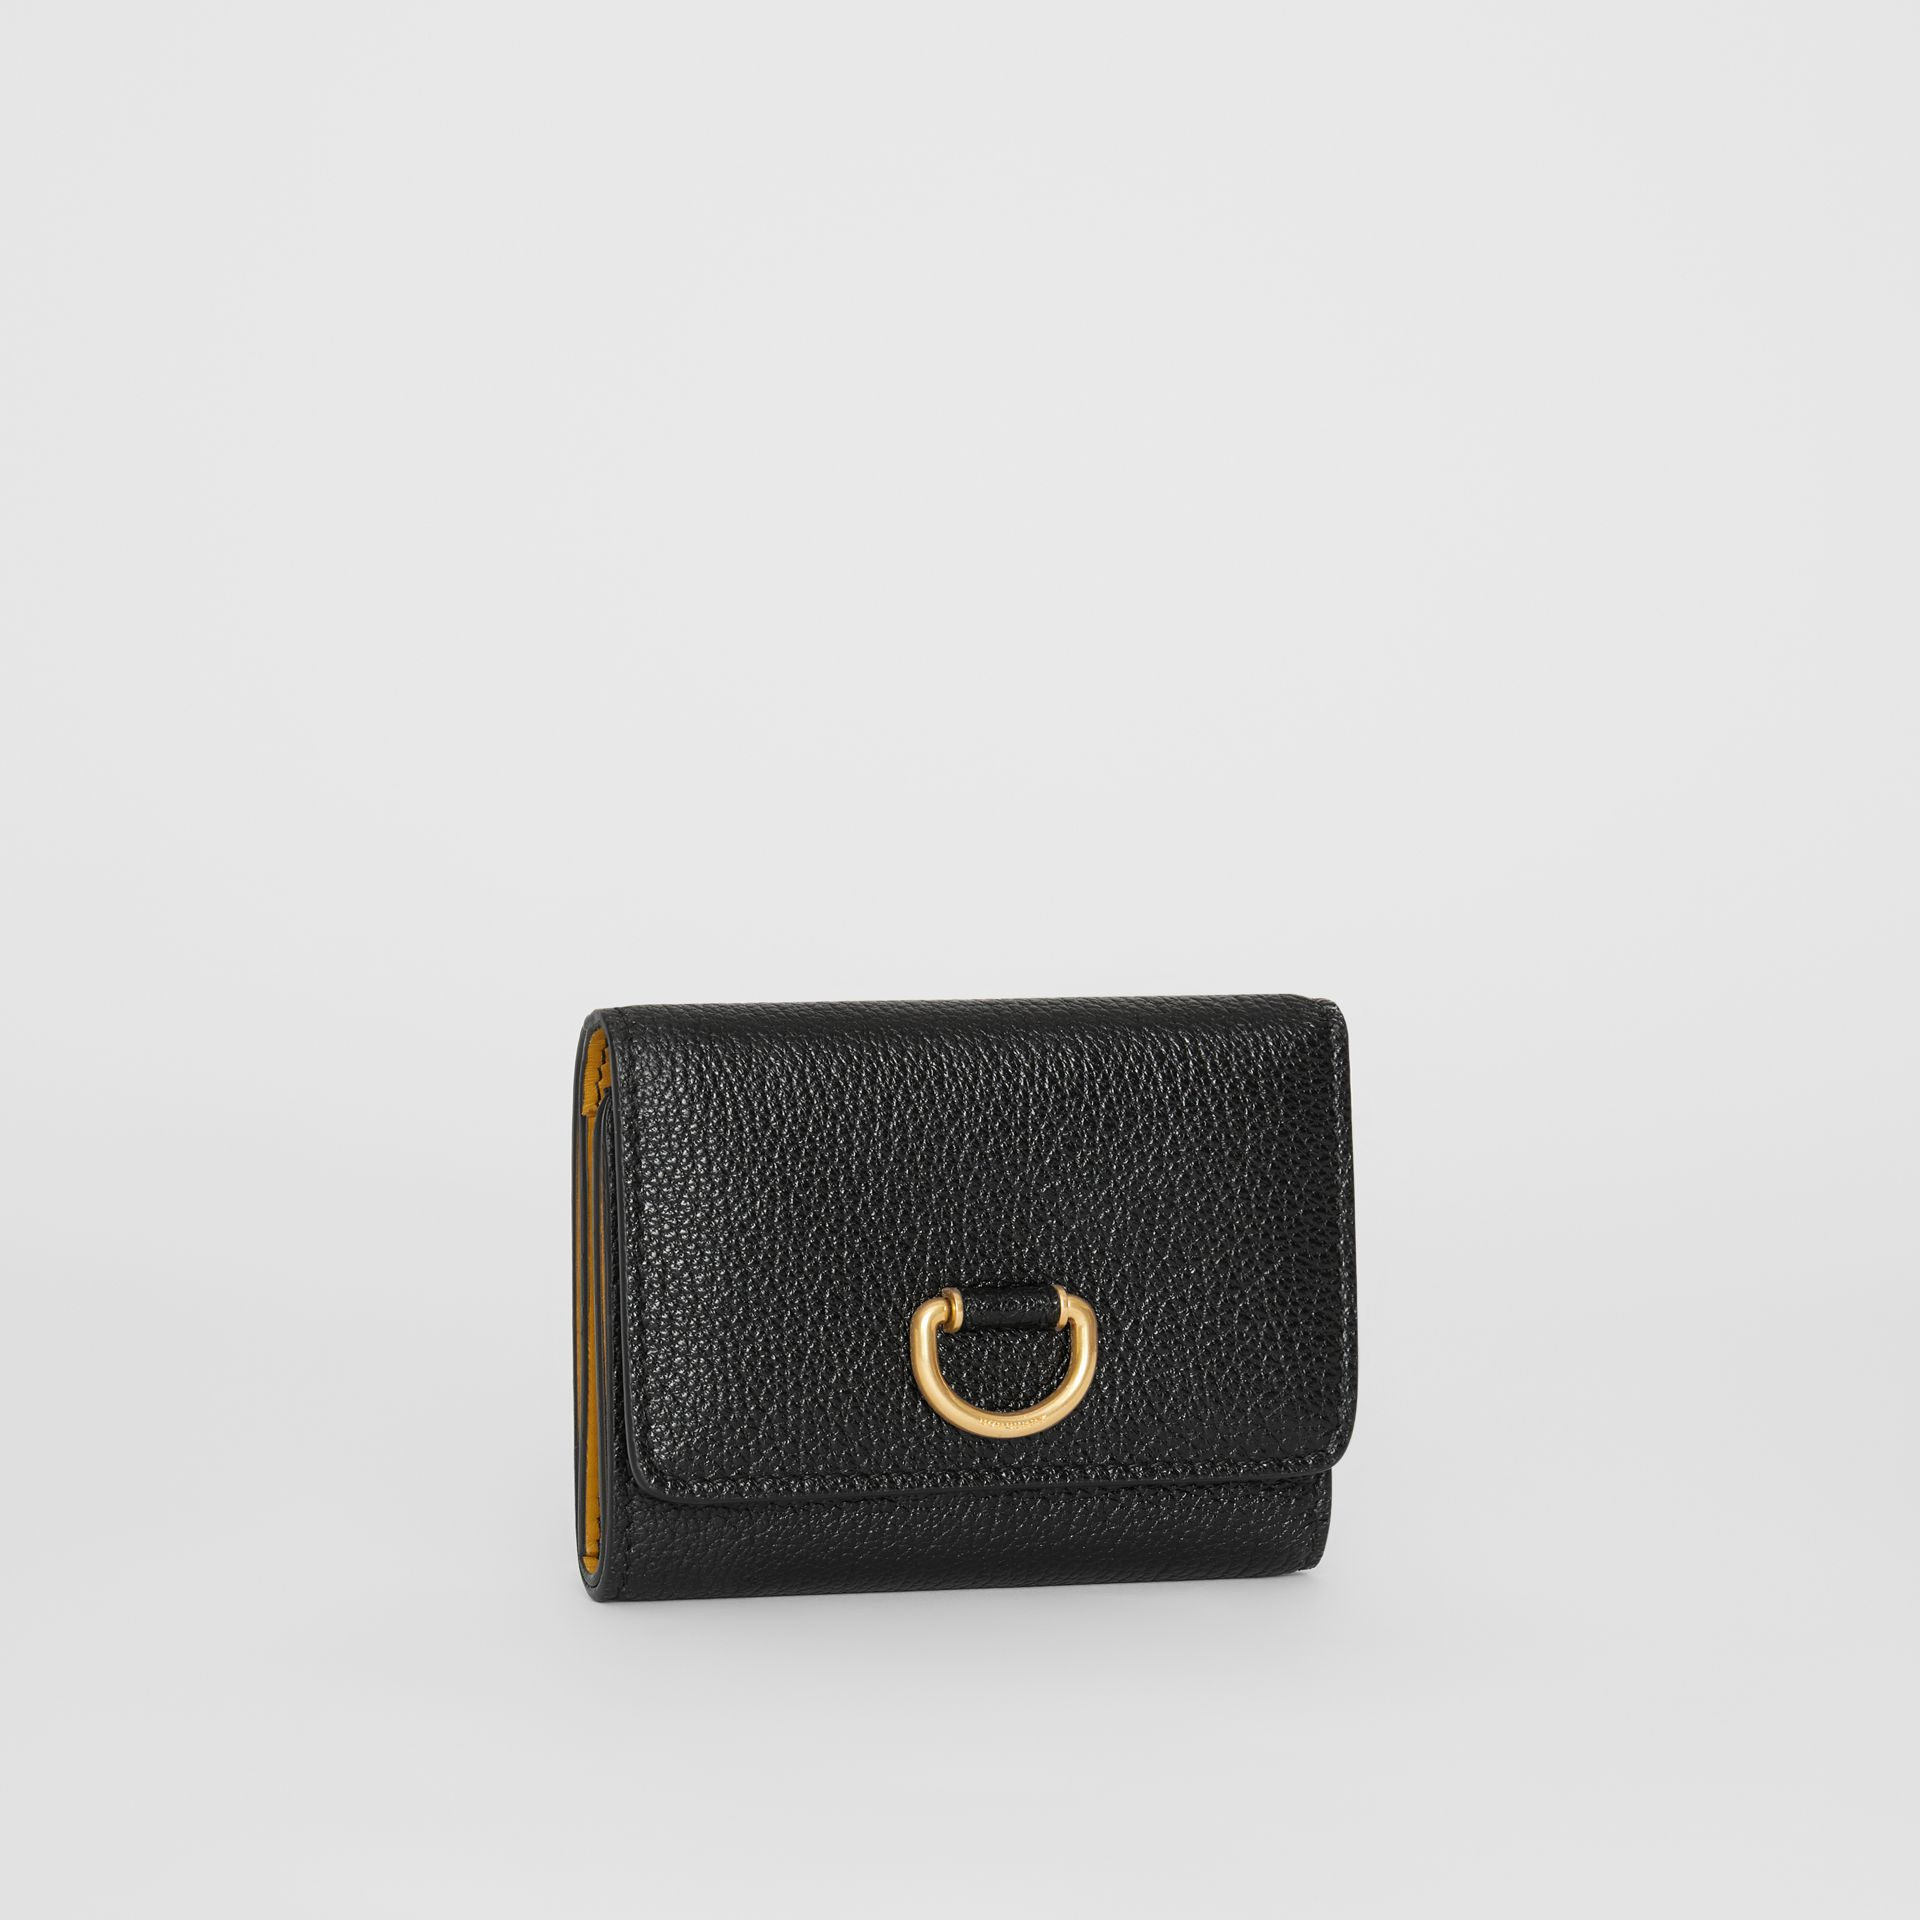 Small D-ring Leather Wallet in Black - Women | Burberry - gallery image 3